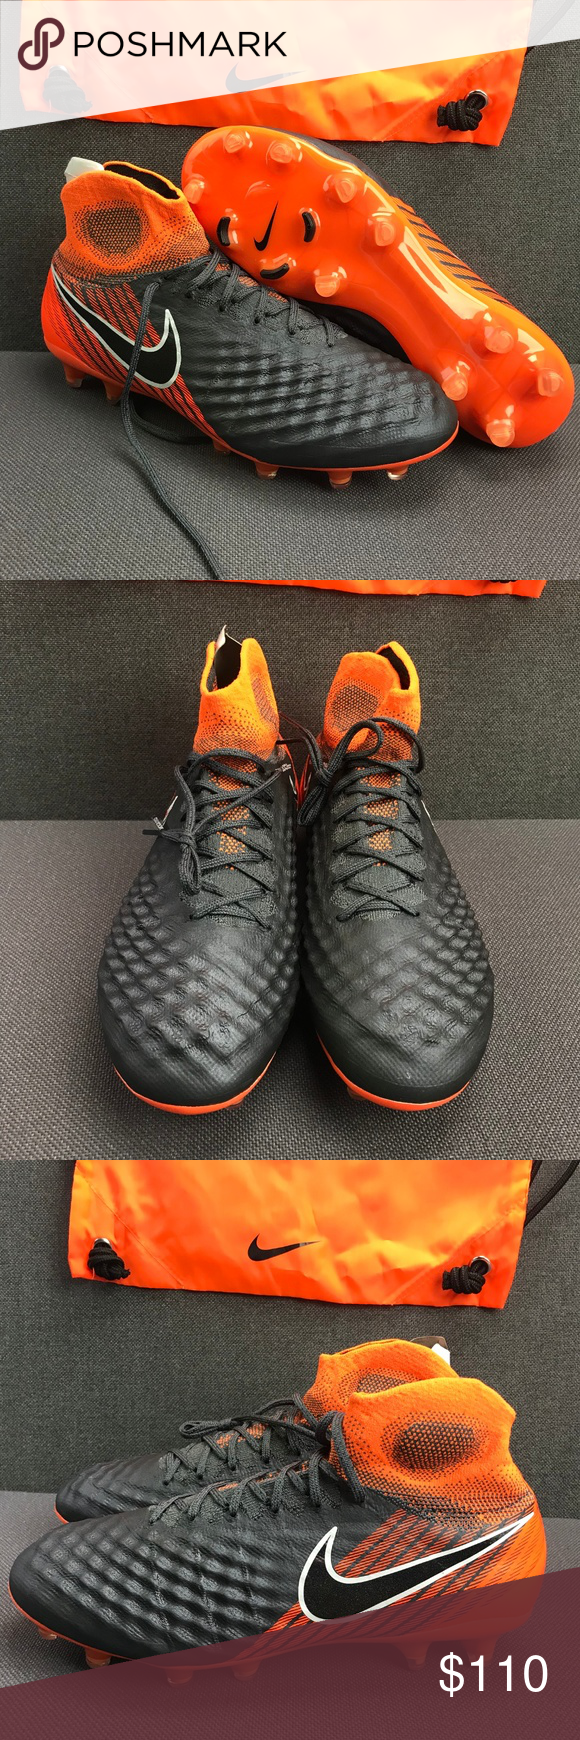 148181f0c1a Nike Magista Obra 2 Elite DF FG AH7301-080 Sz 8 Nike Magista Obra 2 Elite  DF FG AH7301-080 Dark Gray Total Orange Men s Size  8 NOTE  If it s not in  the ...